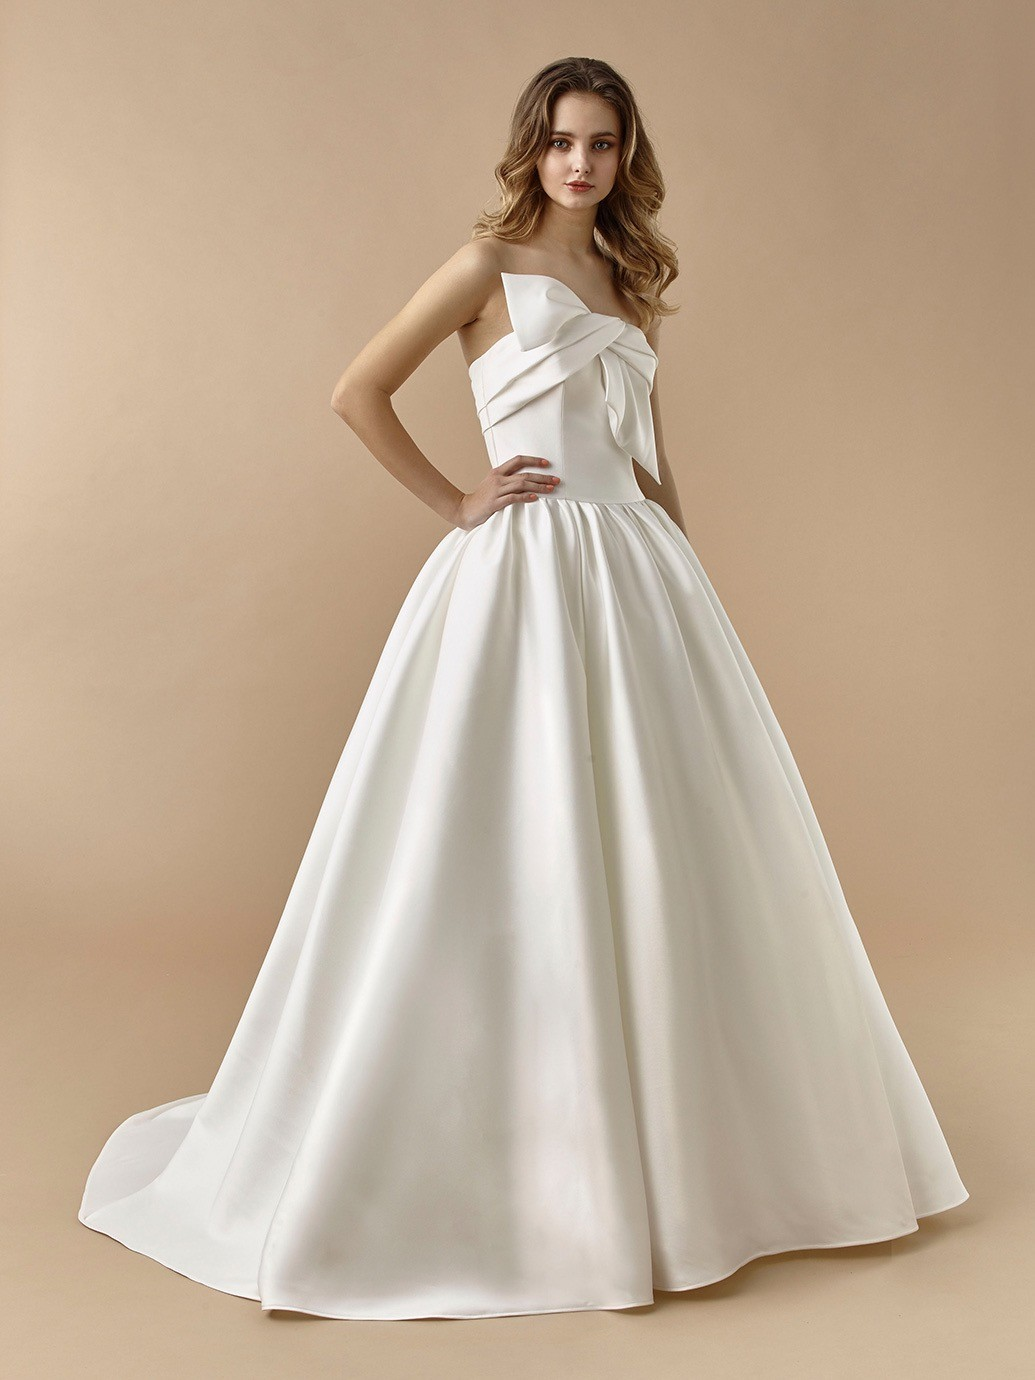 Brautkleid Modell BT20-08 aus der Beautiful Bridal Kollektion 2020